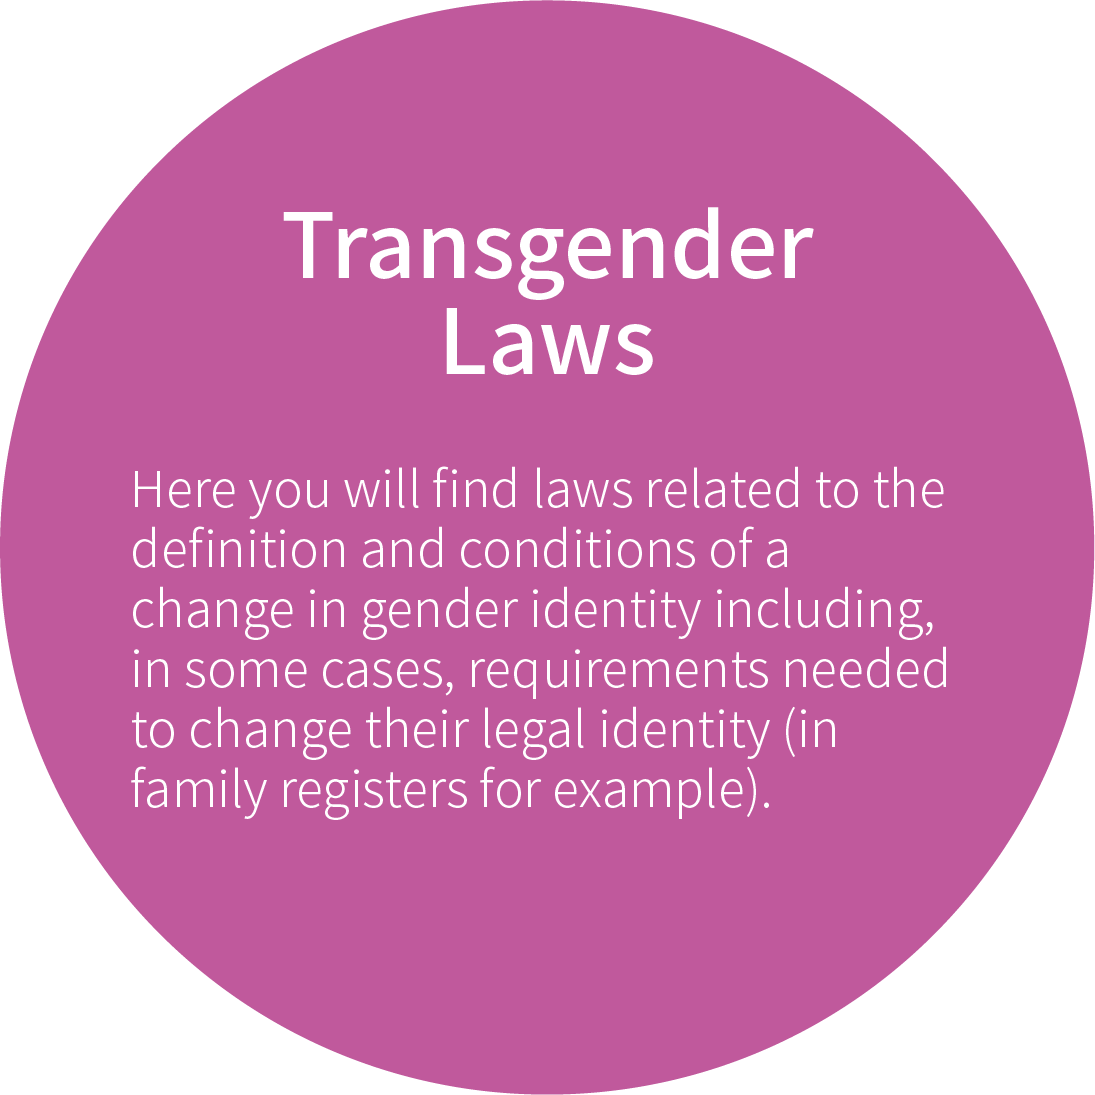 Transgender Laws  Here you will find laws related to the definition and conditions of a change in gender identity including, in some cases, requirements needed to change their legal identity (in family registers for example).